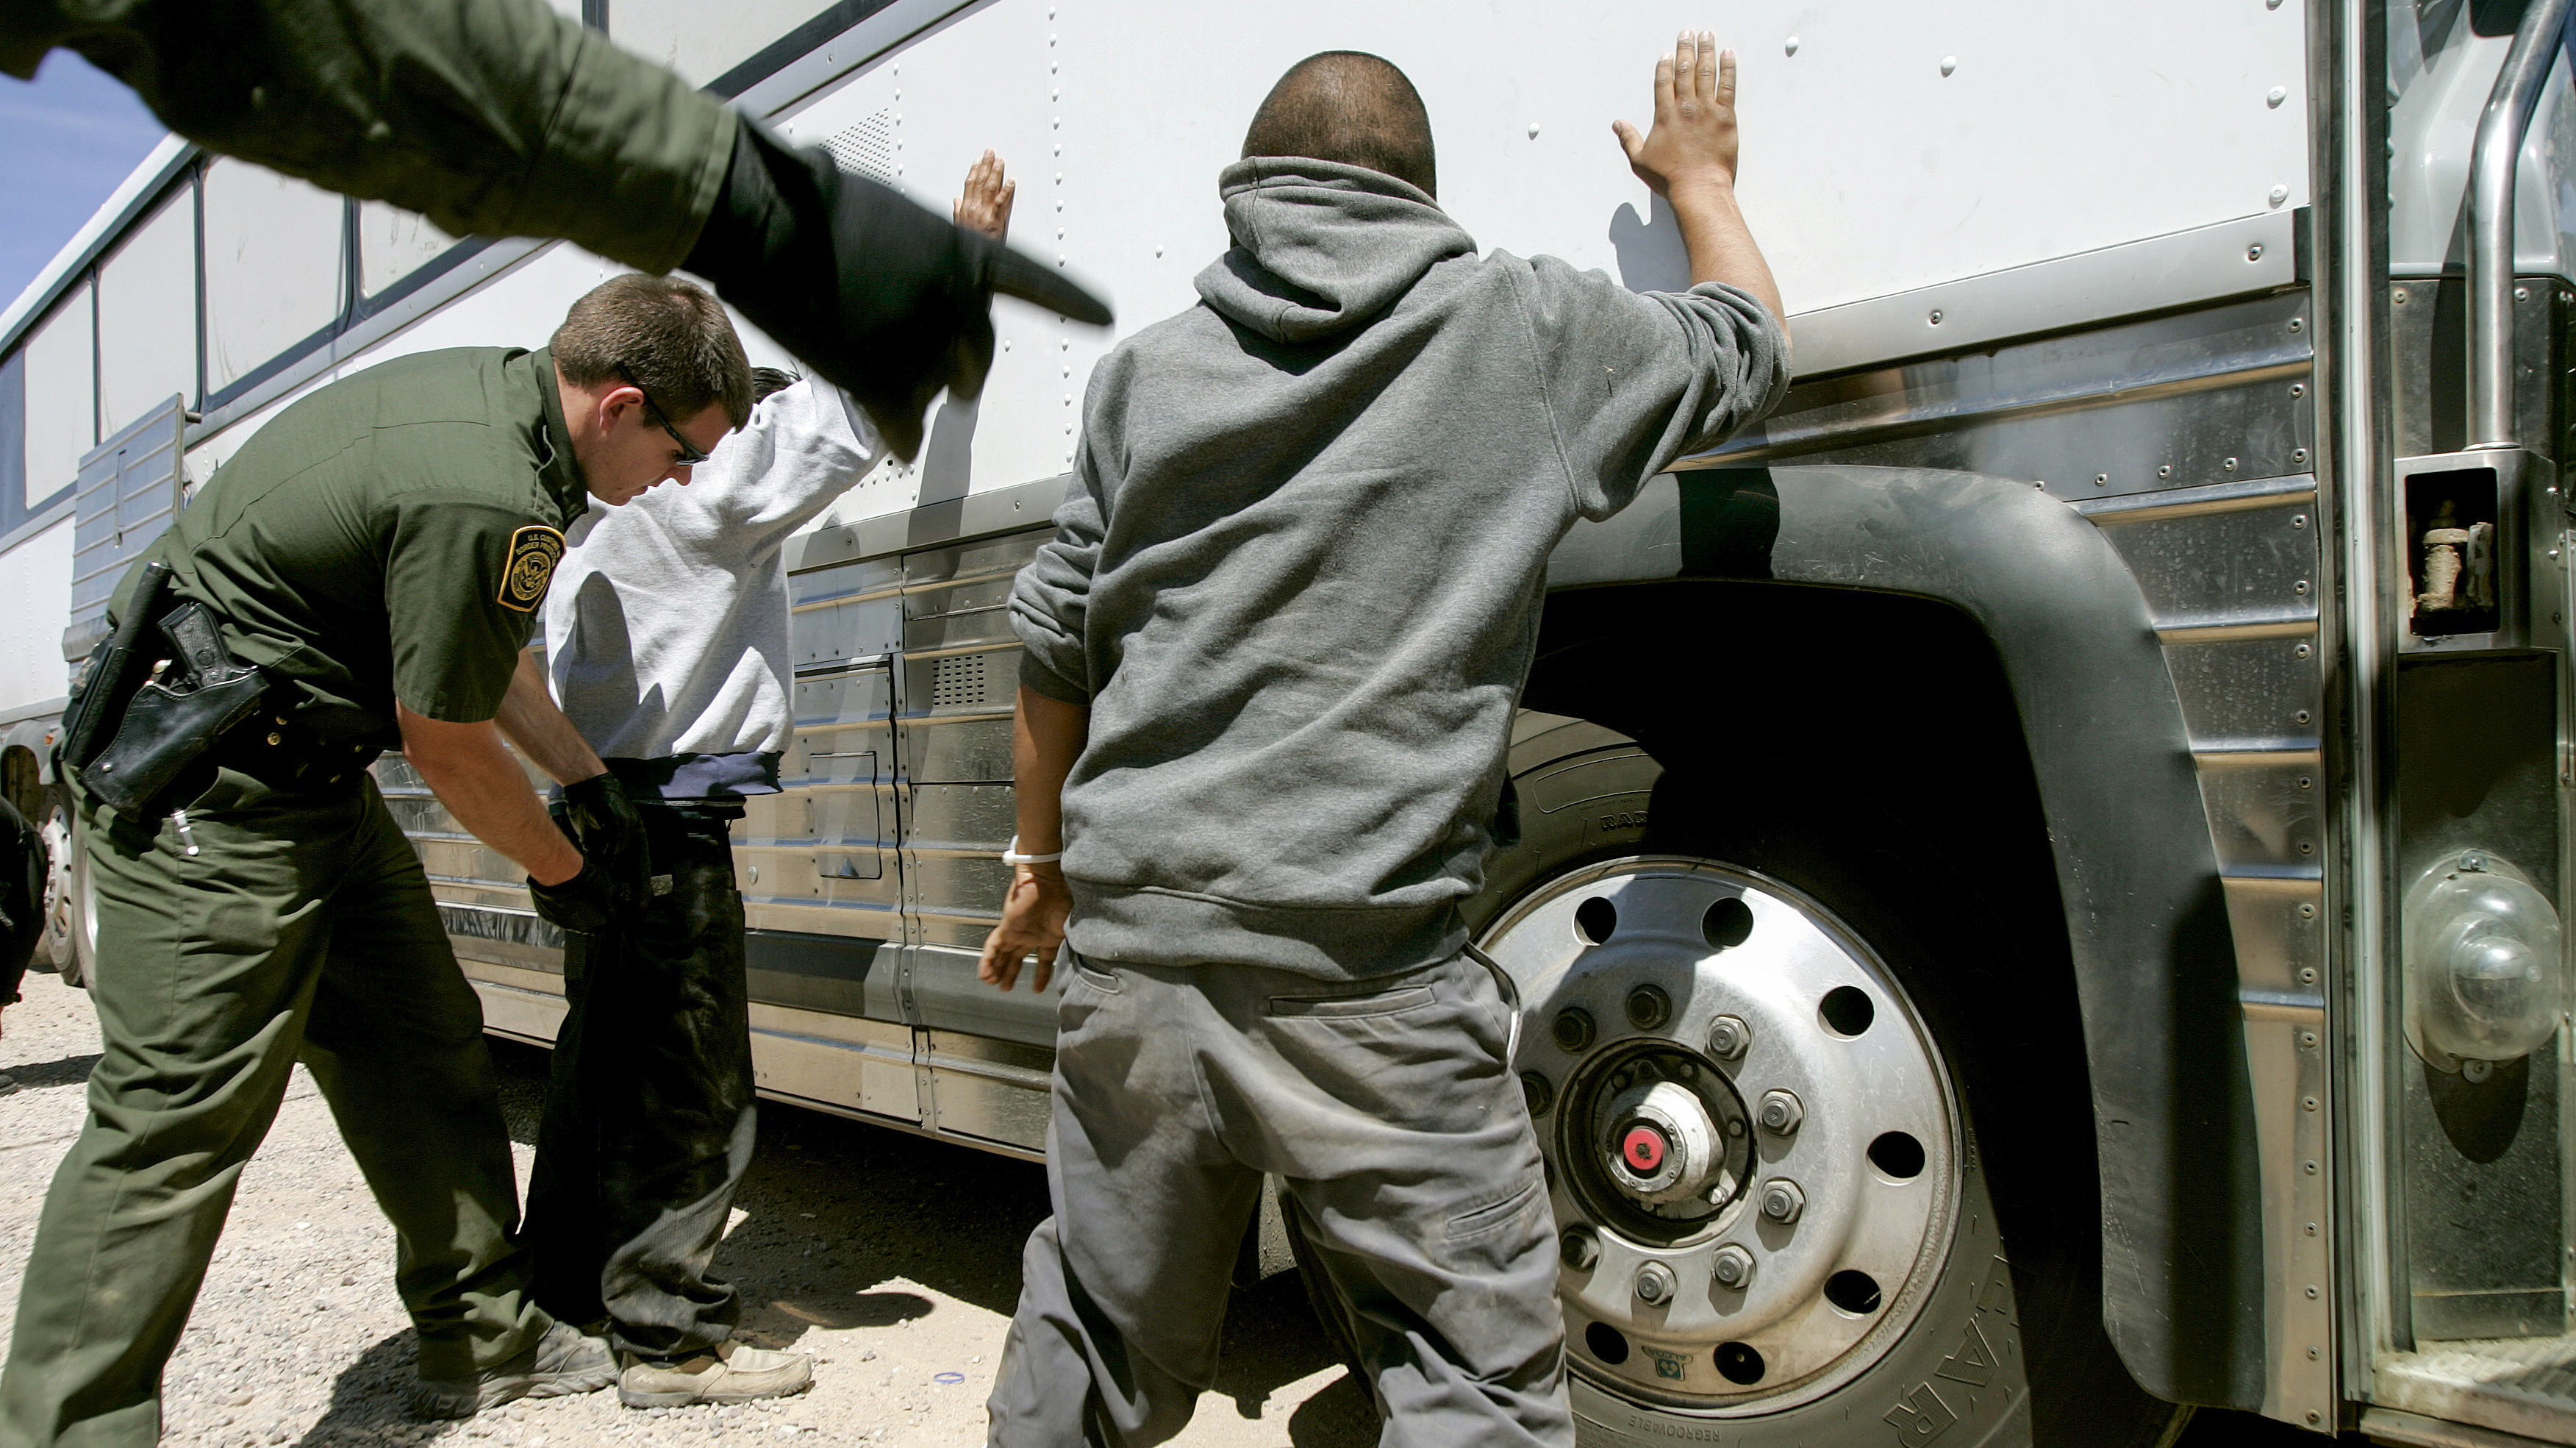 border patrol state silko essay The united states border patrol  texas rangers were also sporadically assigned to patrol duties by the state, and their efforts were noted as singularly effective.